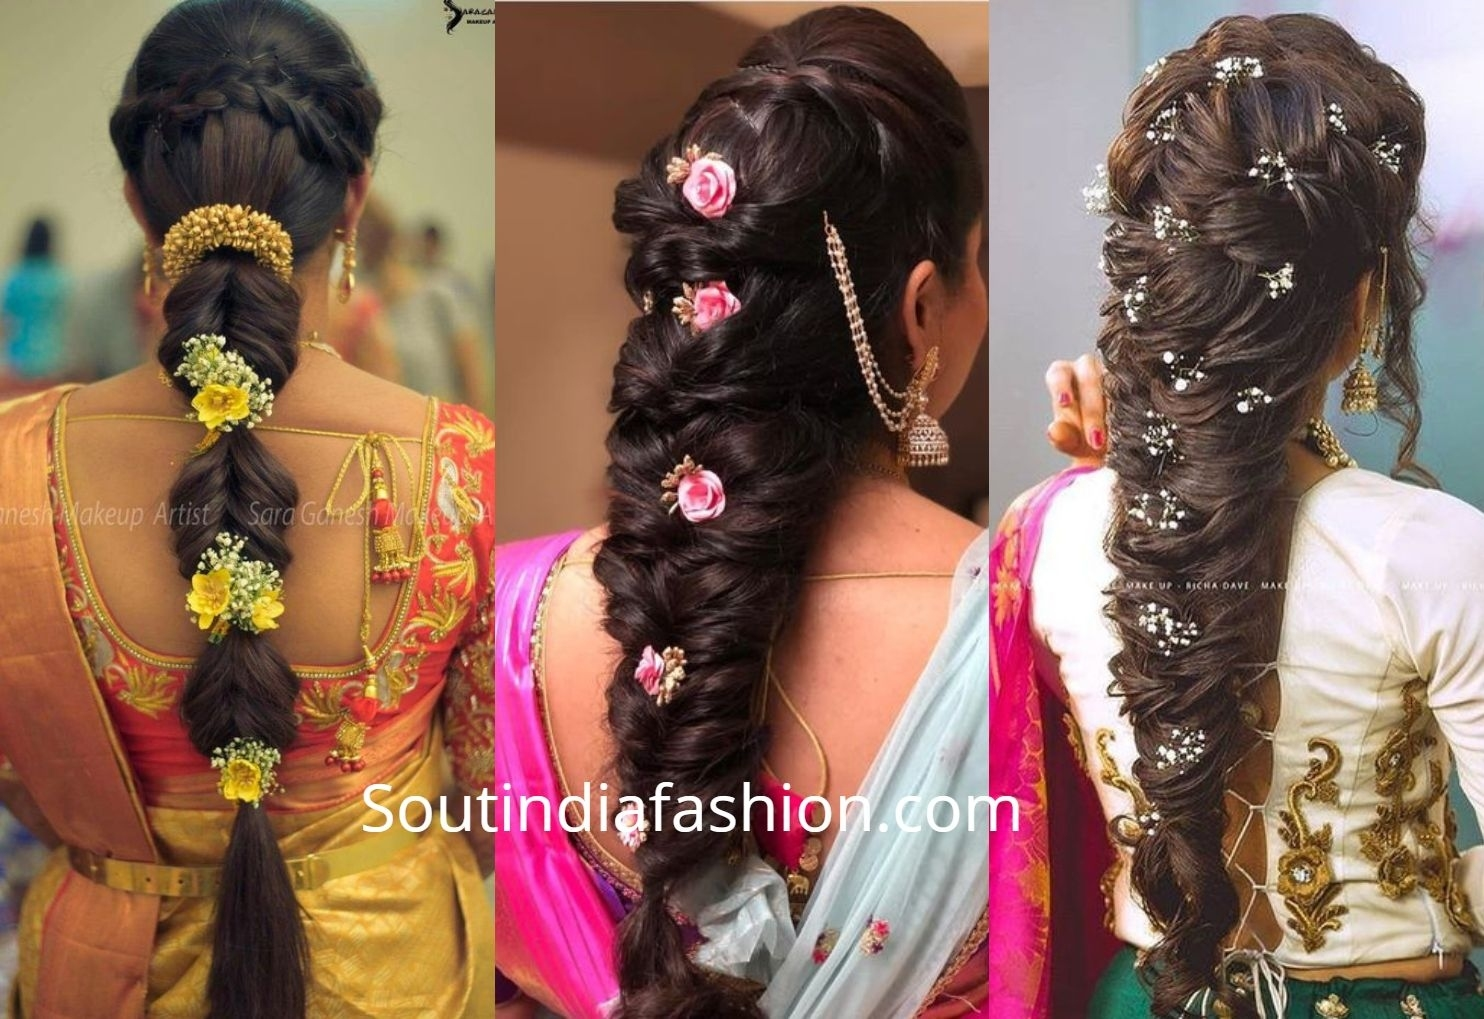 Top 10 South Indian Bridal Hairstyles For Weddings in Indian Hairstyle For Bride